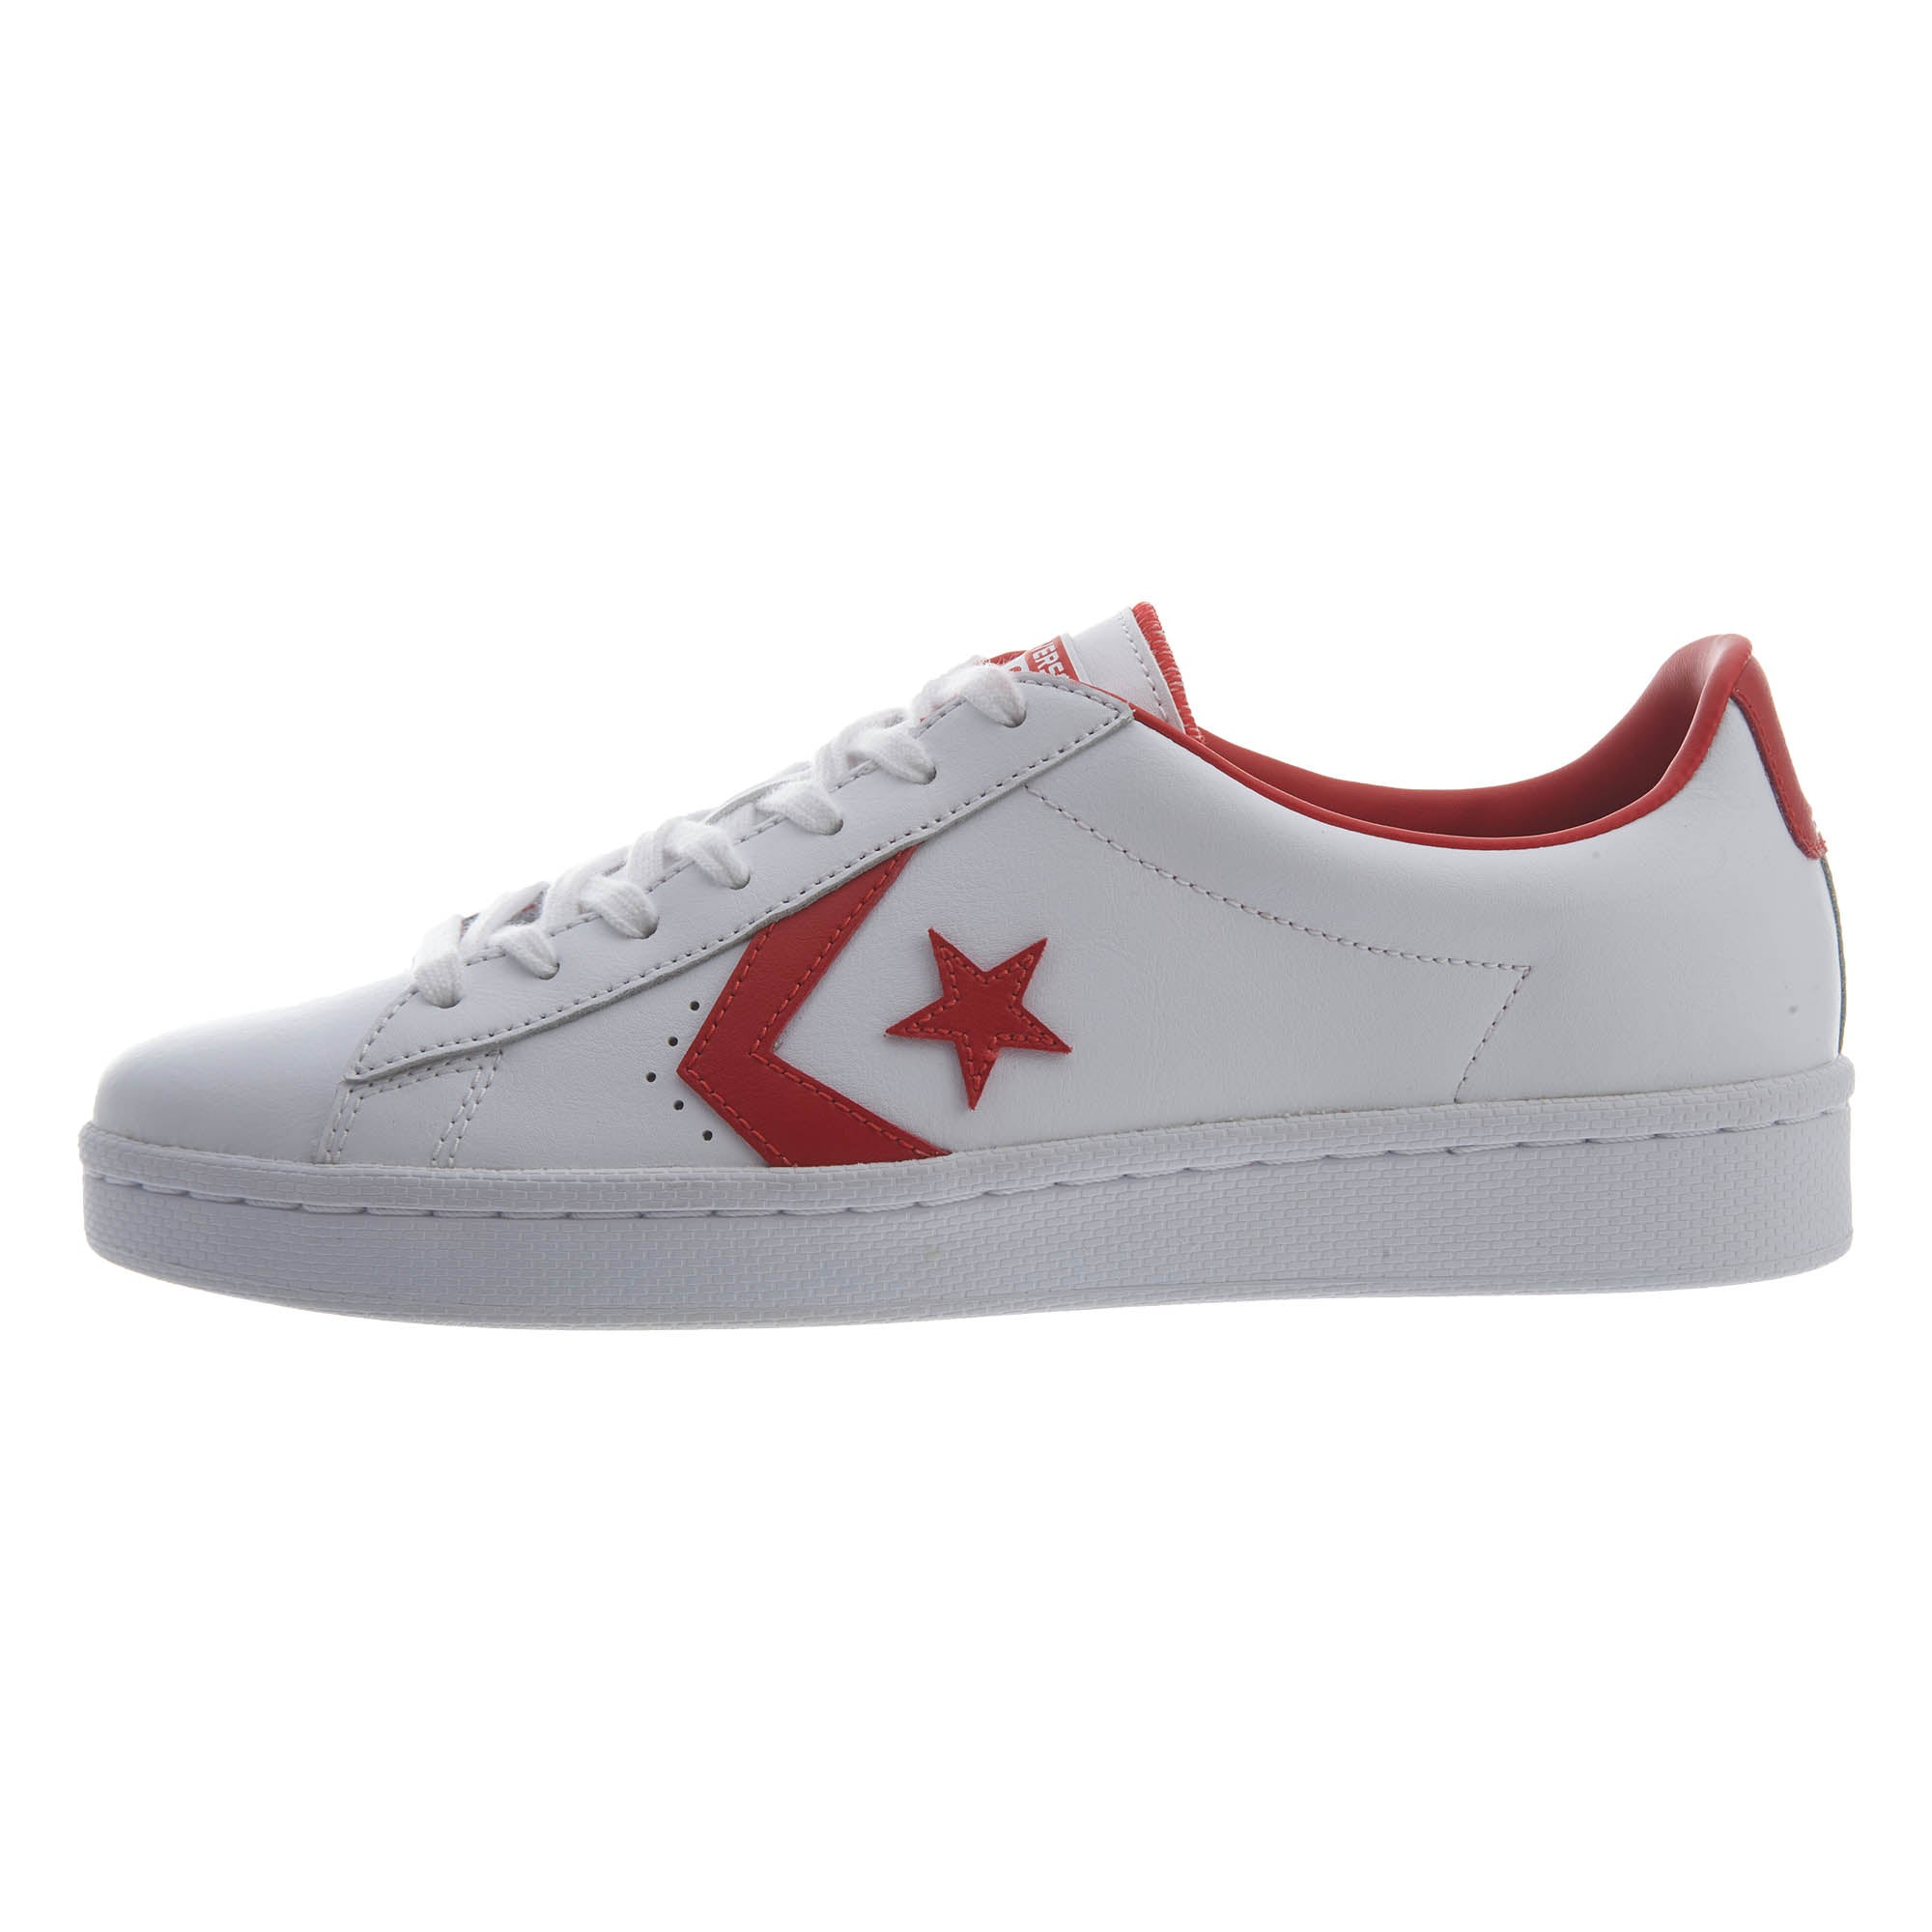 Converse Pro Leather 76 Ox Men s White casino Unisex Style   157423c-White  Casino White 8ad0d95d3